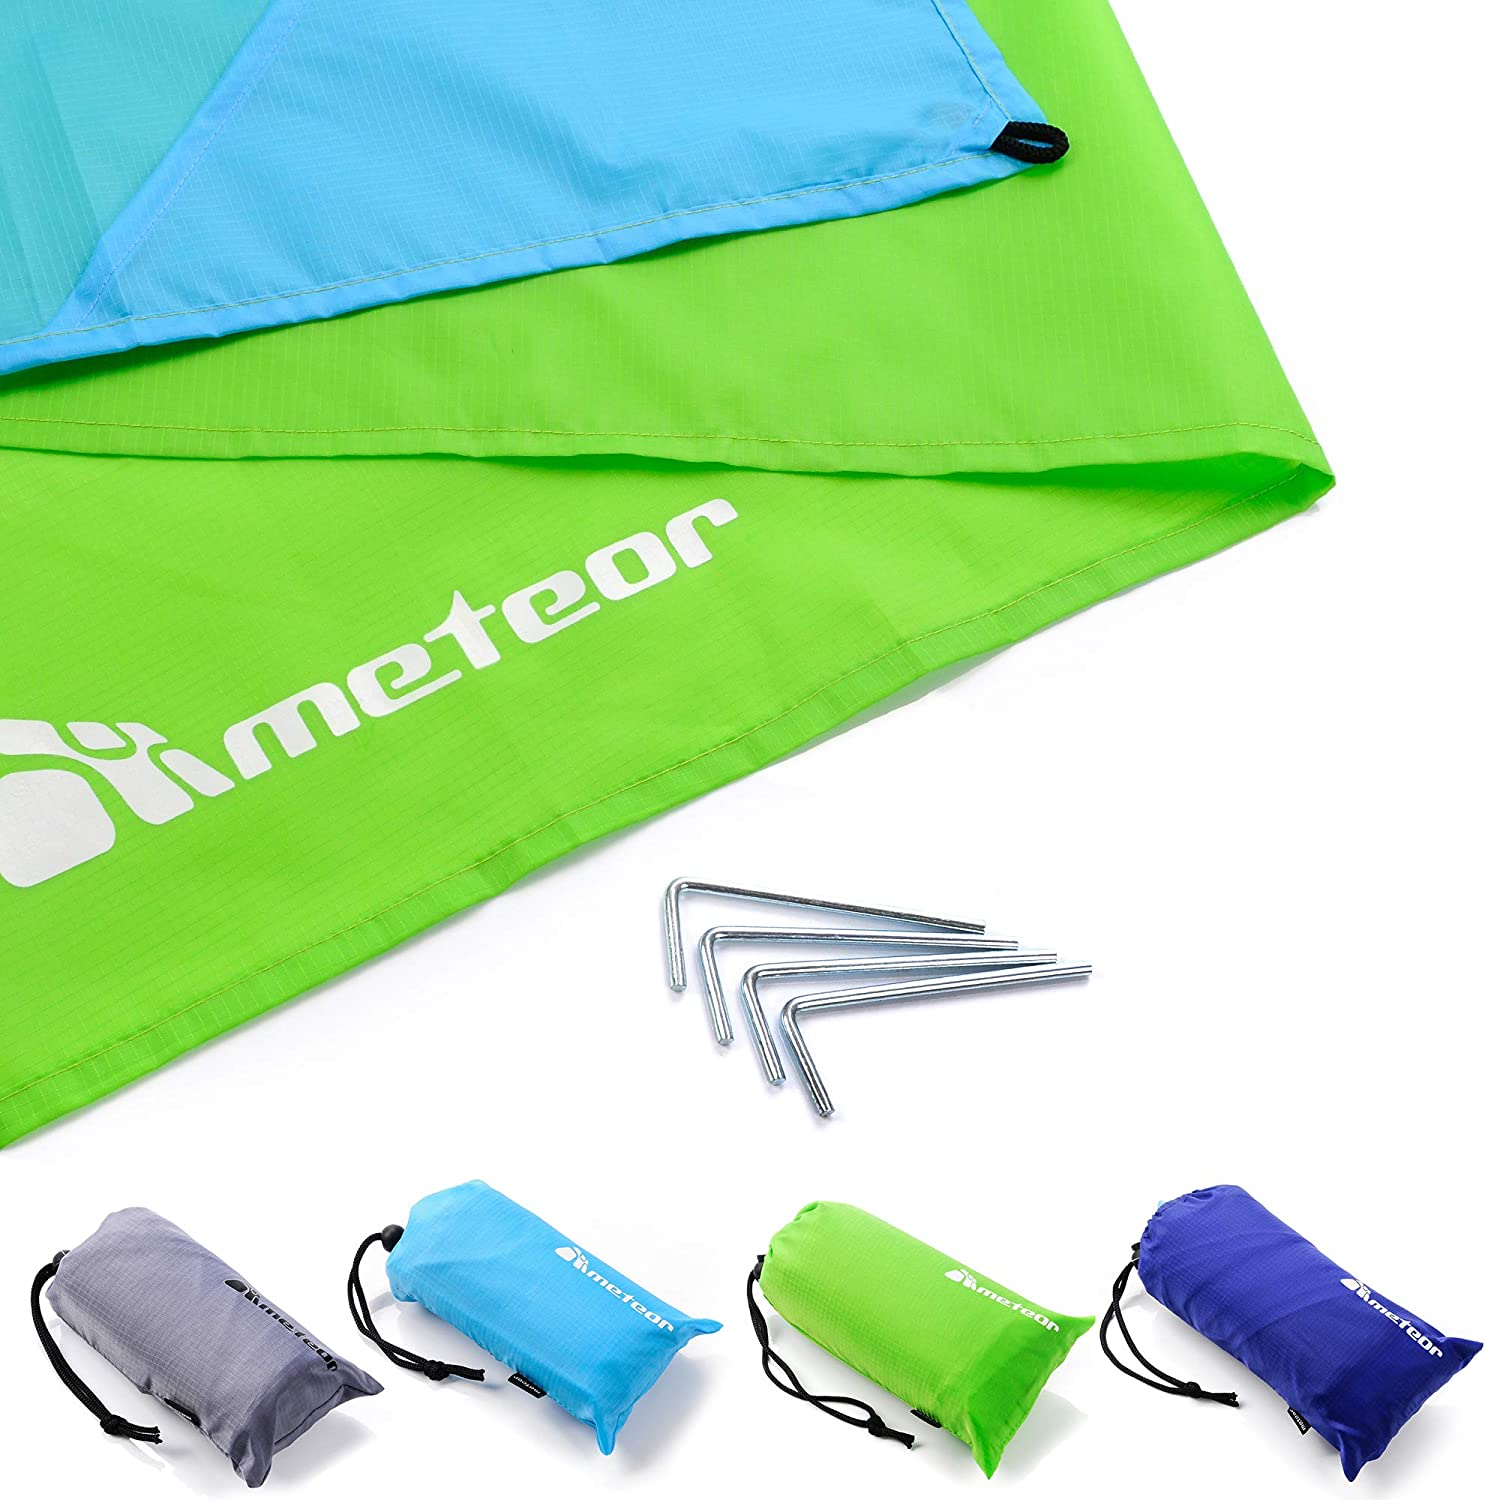 220x200cm//86x79in, Green//Blue Pocket Picnic Blanket Sandproof Water Resistant Compact Lightweight Beach Mat Travel Camping Festival Portable Carry Bag Large Size Corner Pockets Loops 4 Metal Stakes